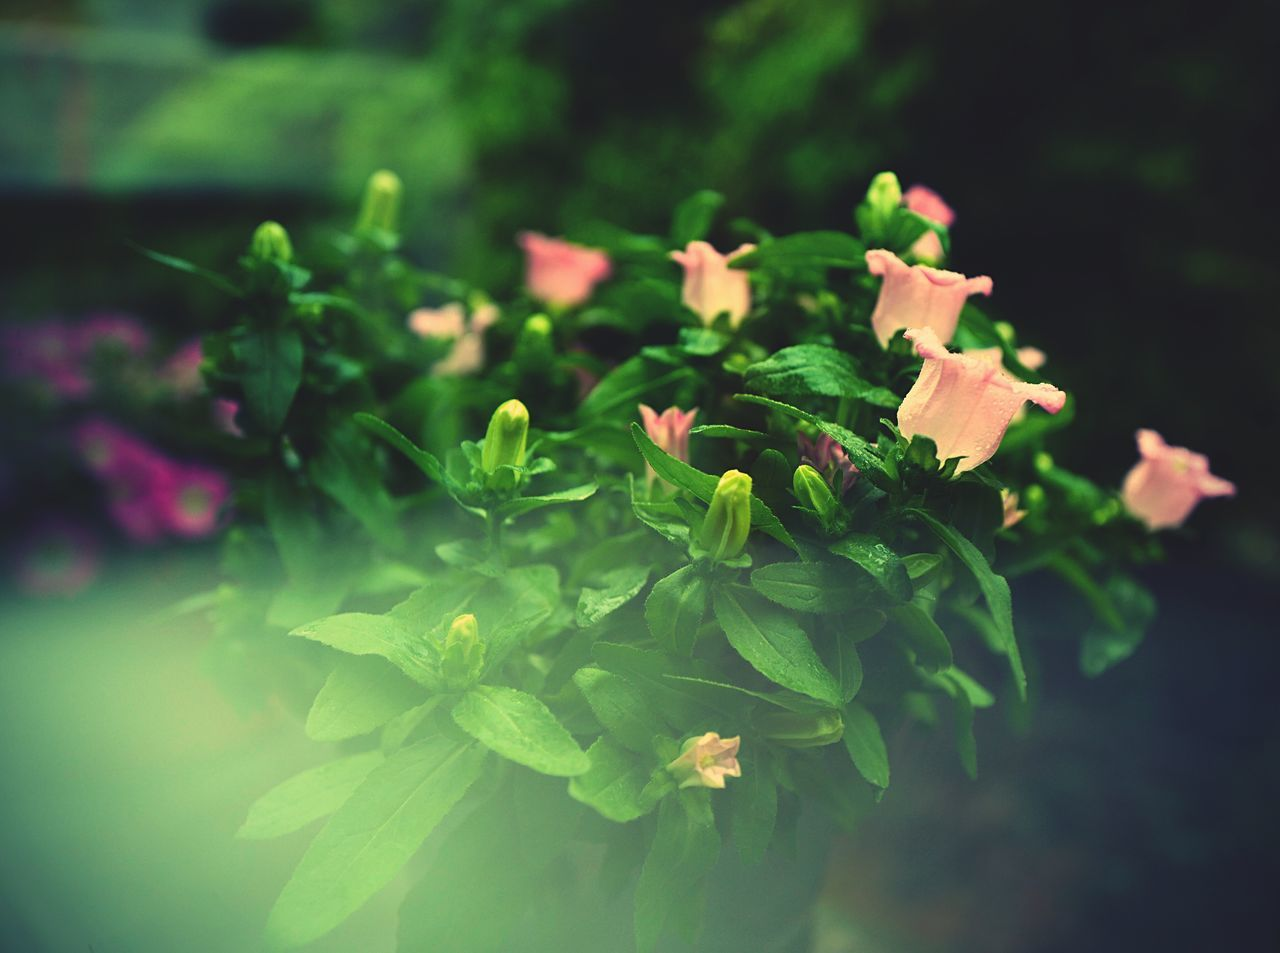 plant, green color, beauty in nature, growth, nature, flower, leaf, freshness, fragility, outdoors, no people, close-up, blooming, flower head, day